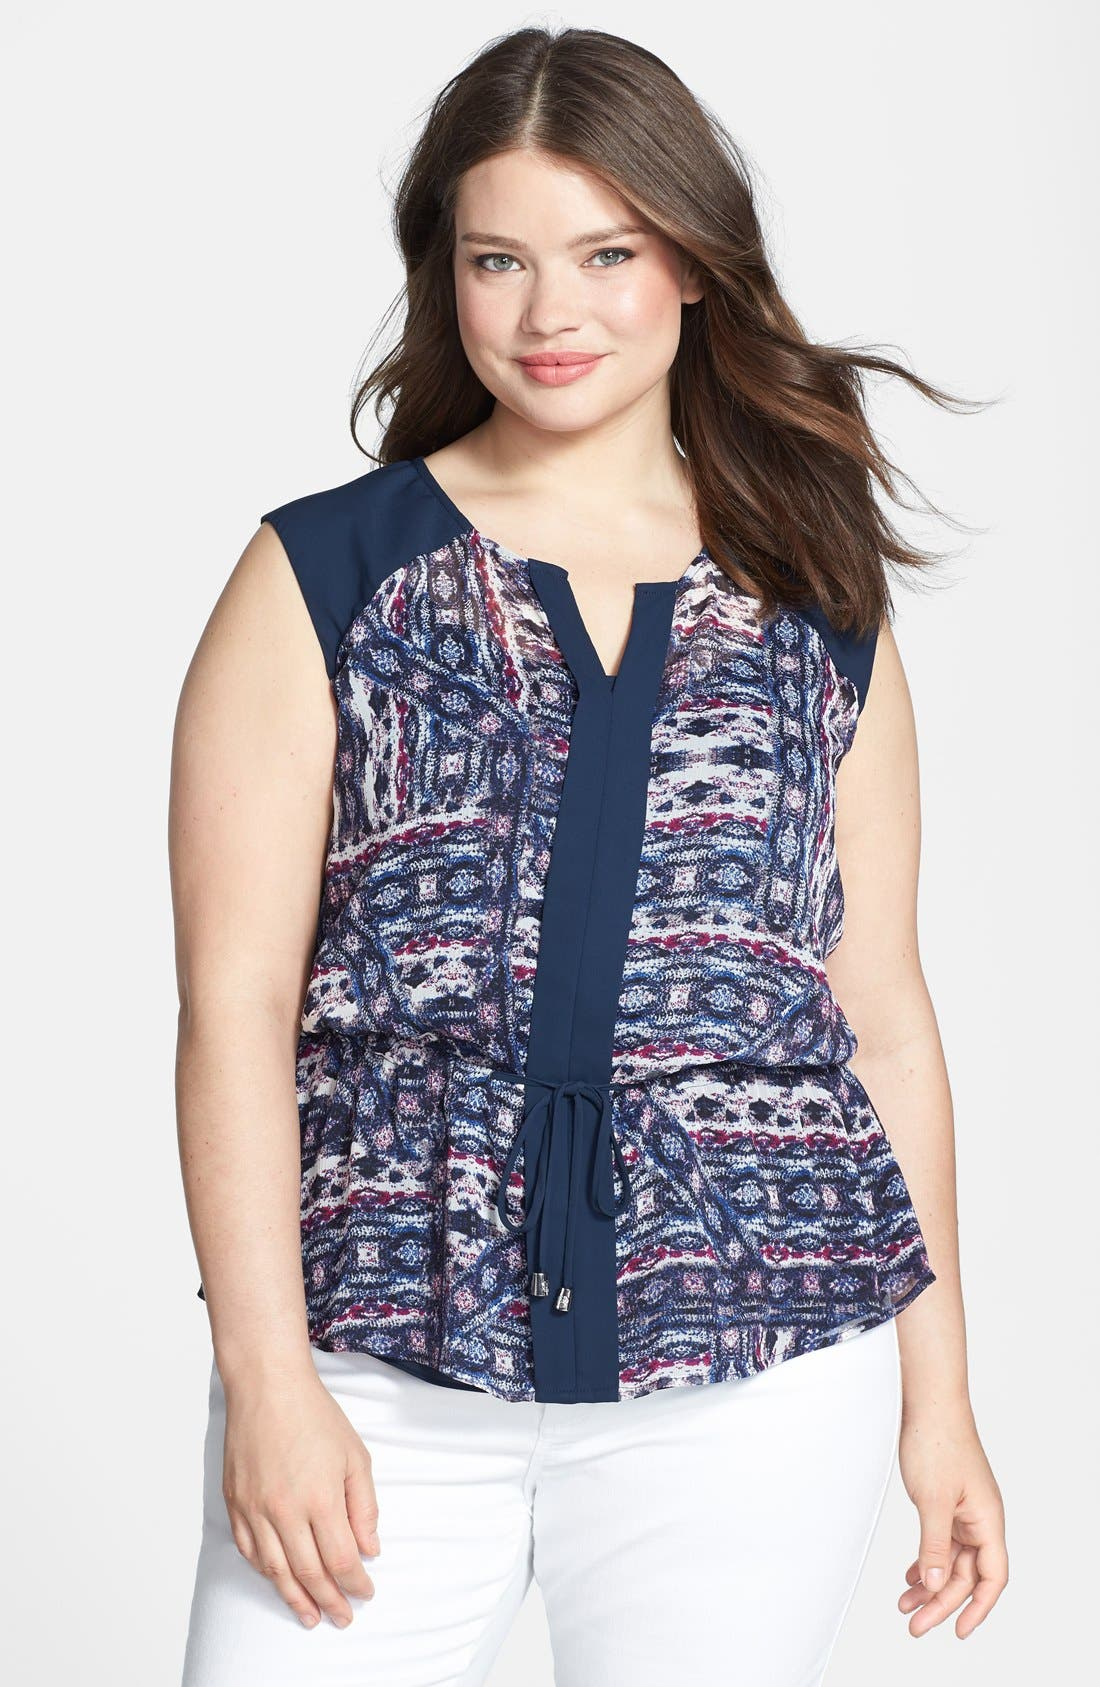 Main Image - Vince Camuto 'Tribal' Print Tie Front Blouse (Plus Size)